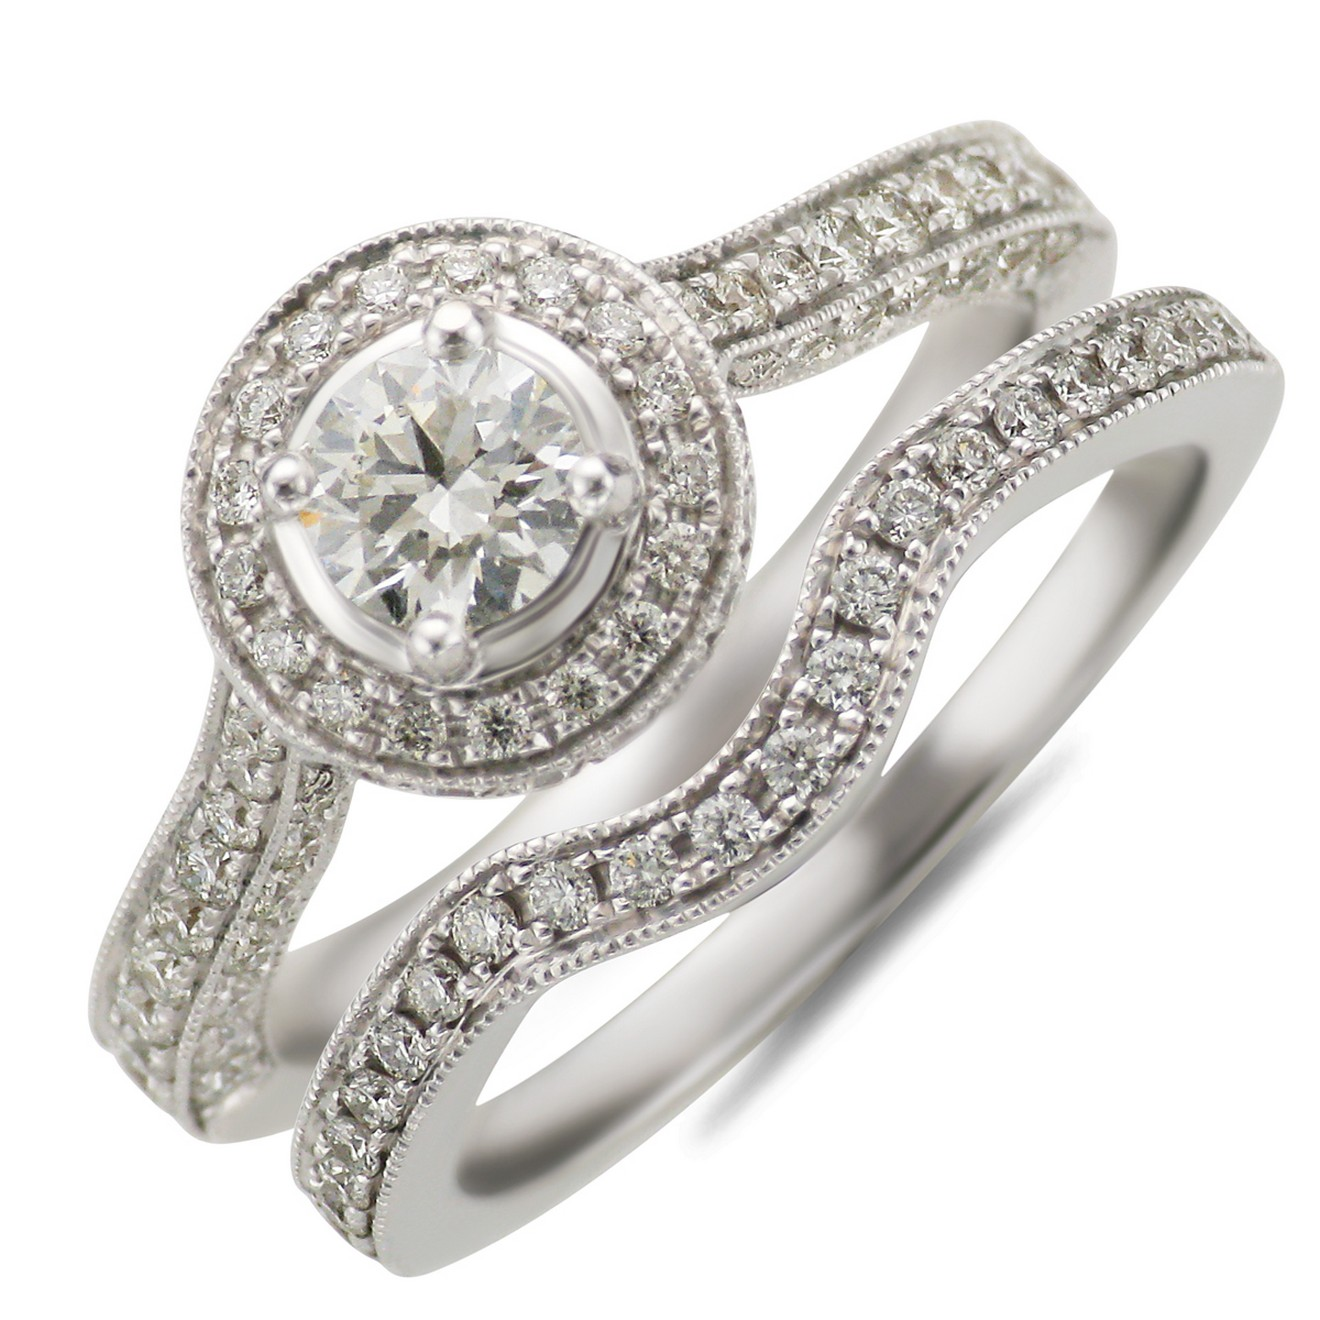 ebay diamond wedding ring sets 7 gorgeous rings - Wedding Rings Ebay